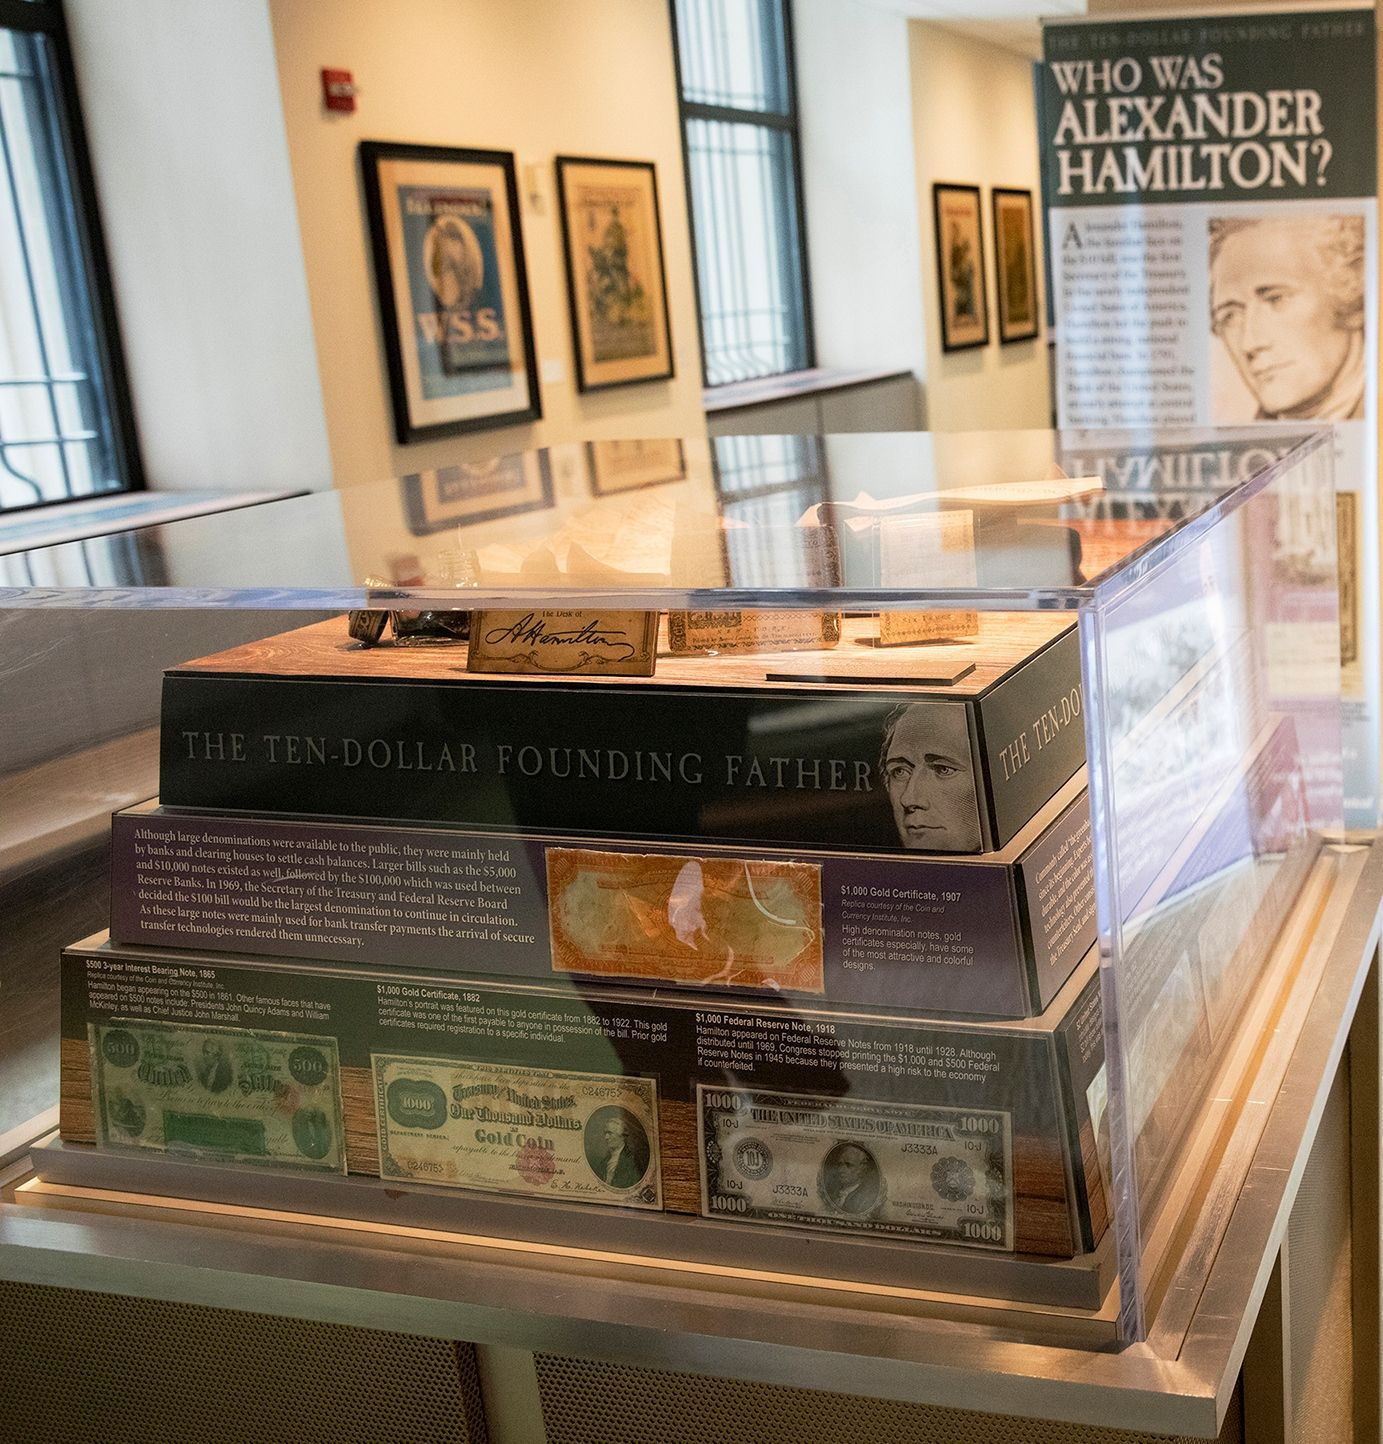 You never know what you might see at Hamilton the Exhibit at